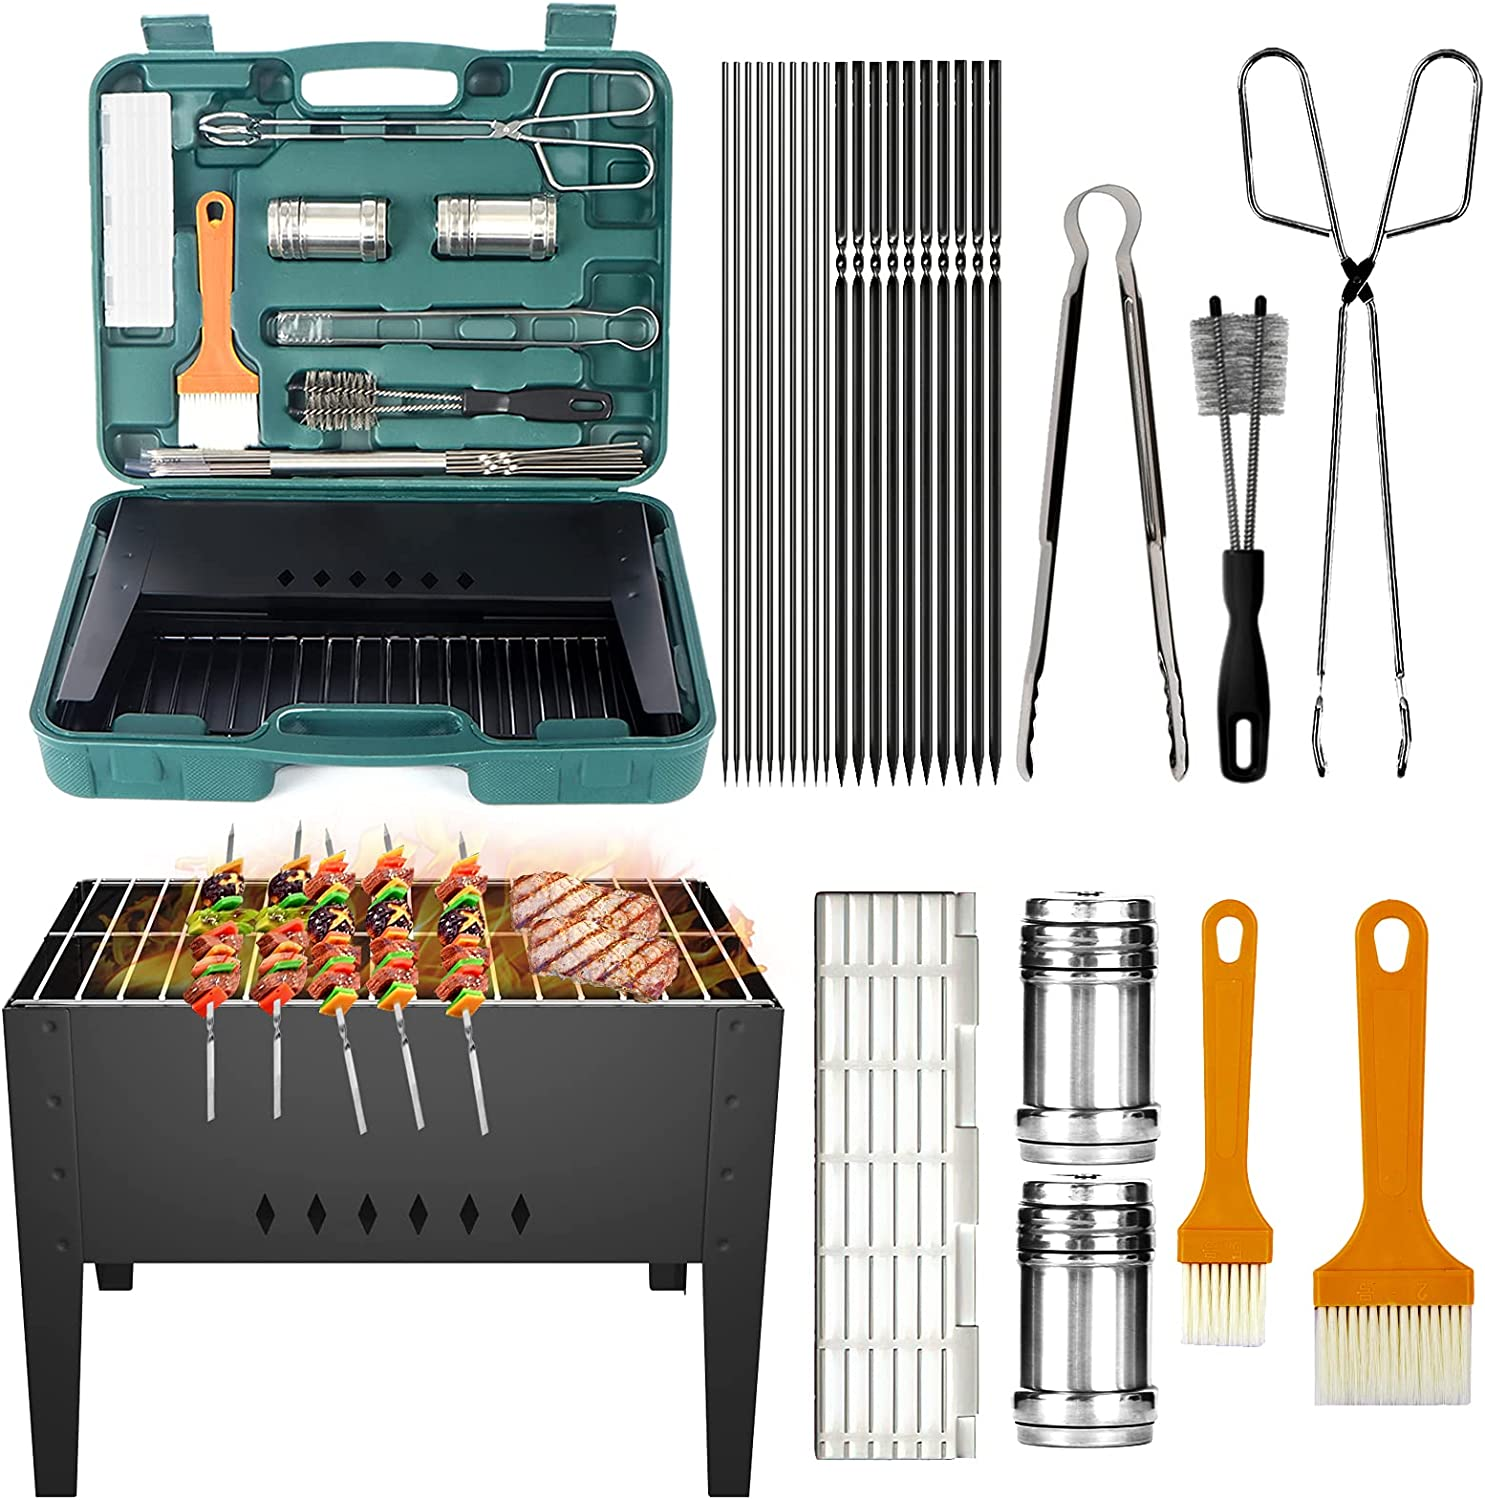 Camzezy Portable Folding BBQ Grill Little High quality 29 C Pieces - free shipping